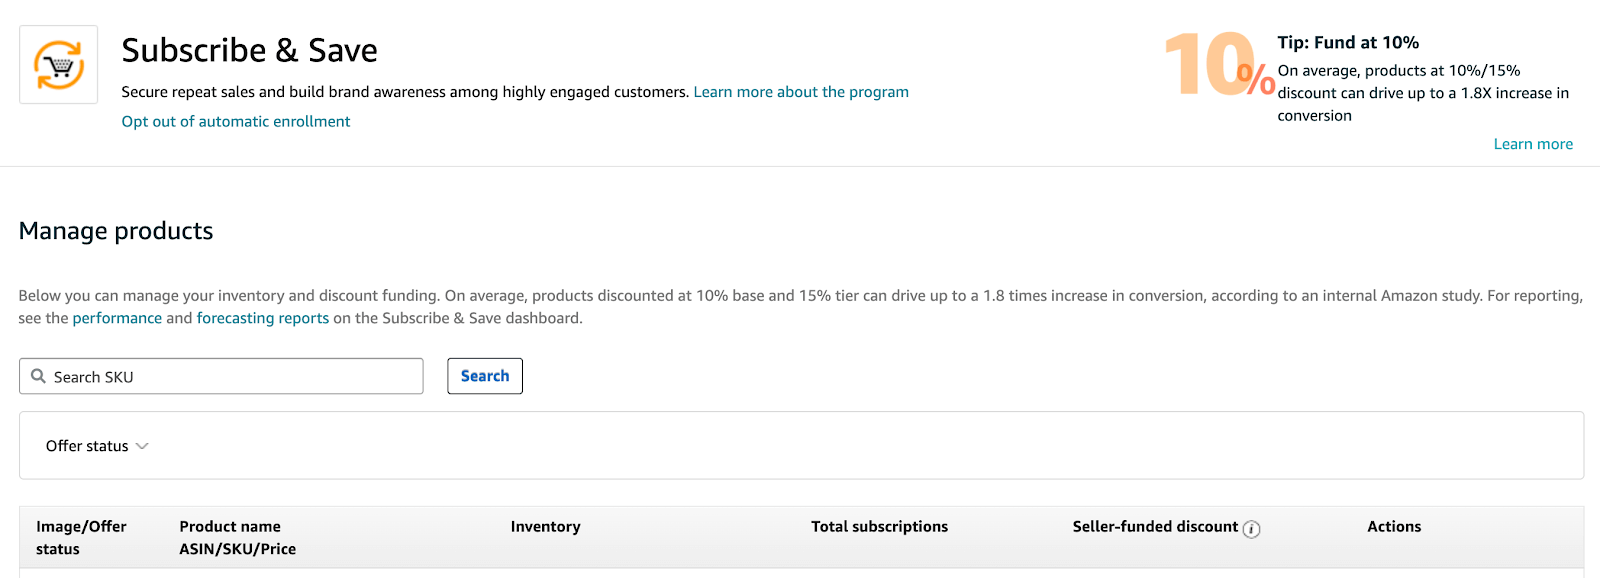 Amazon Subscribe & Save: managing products in Seller Central